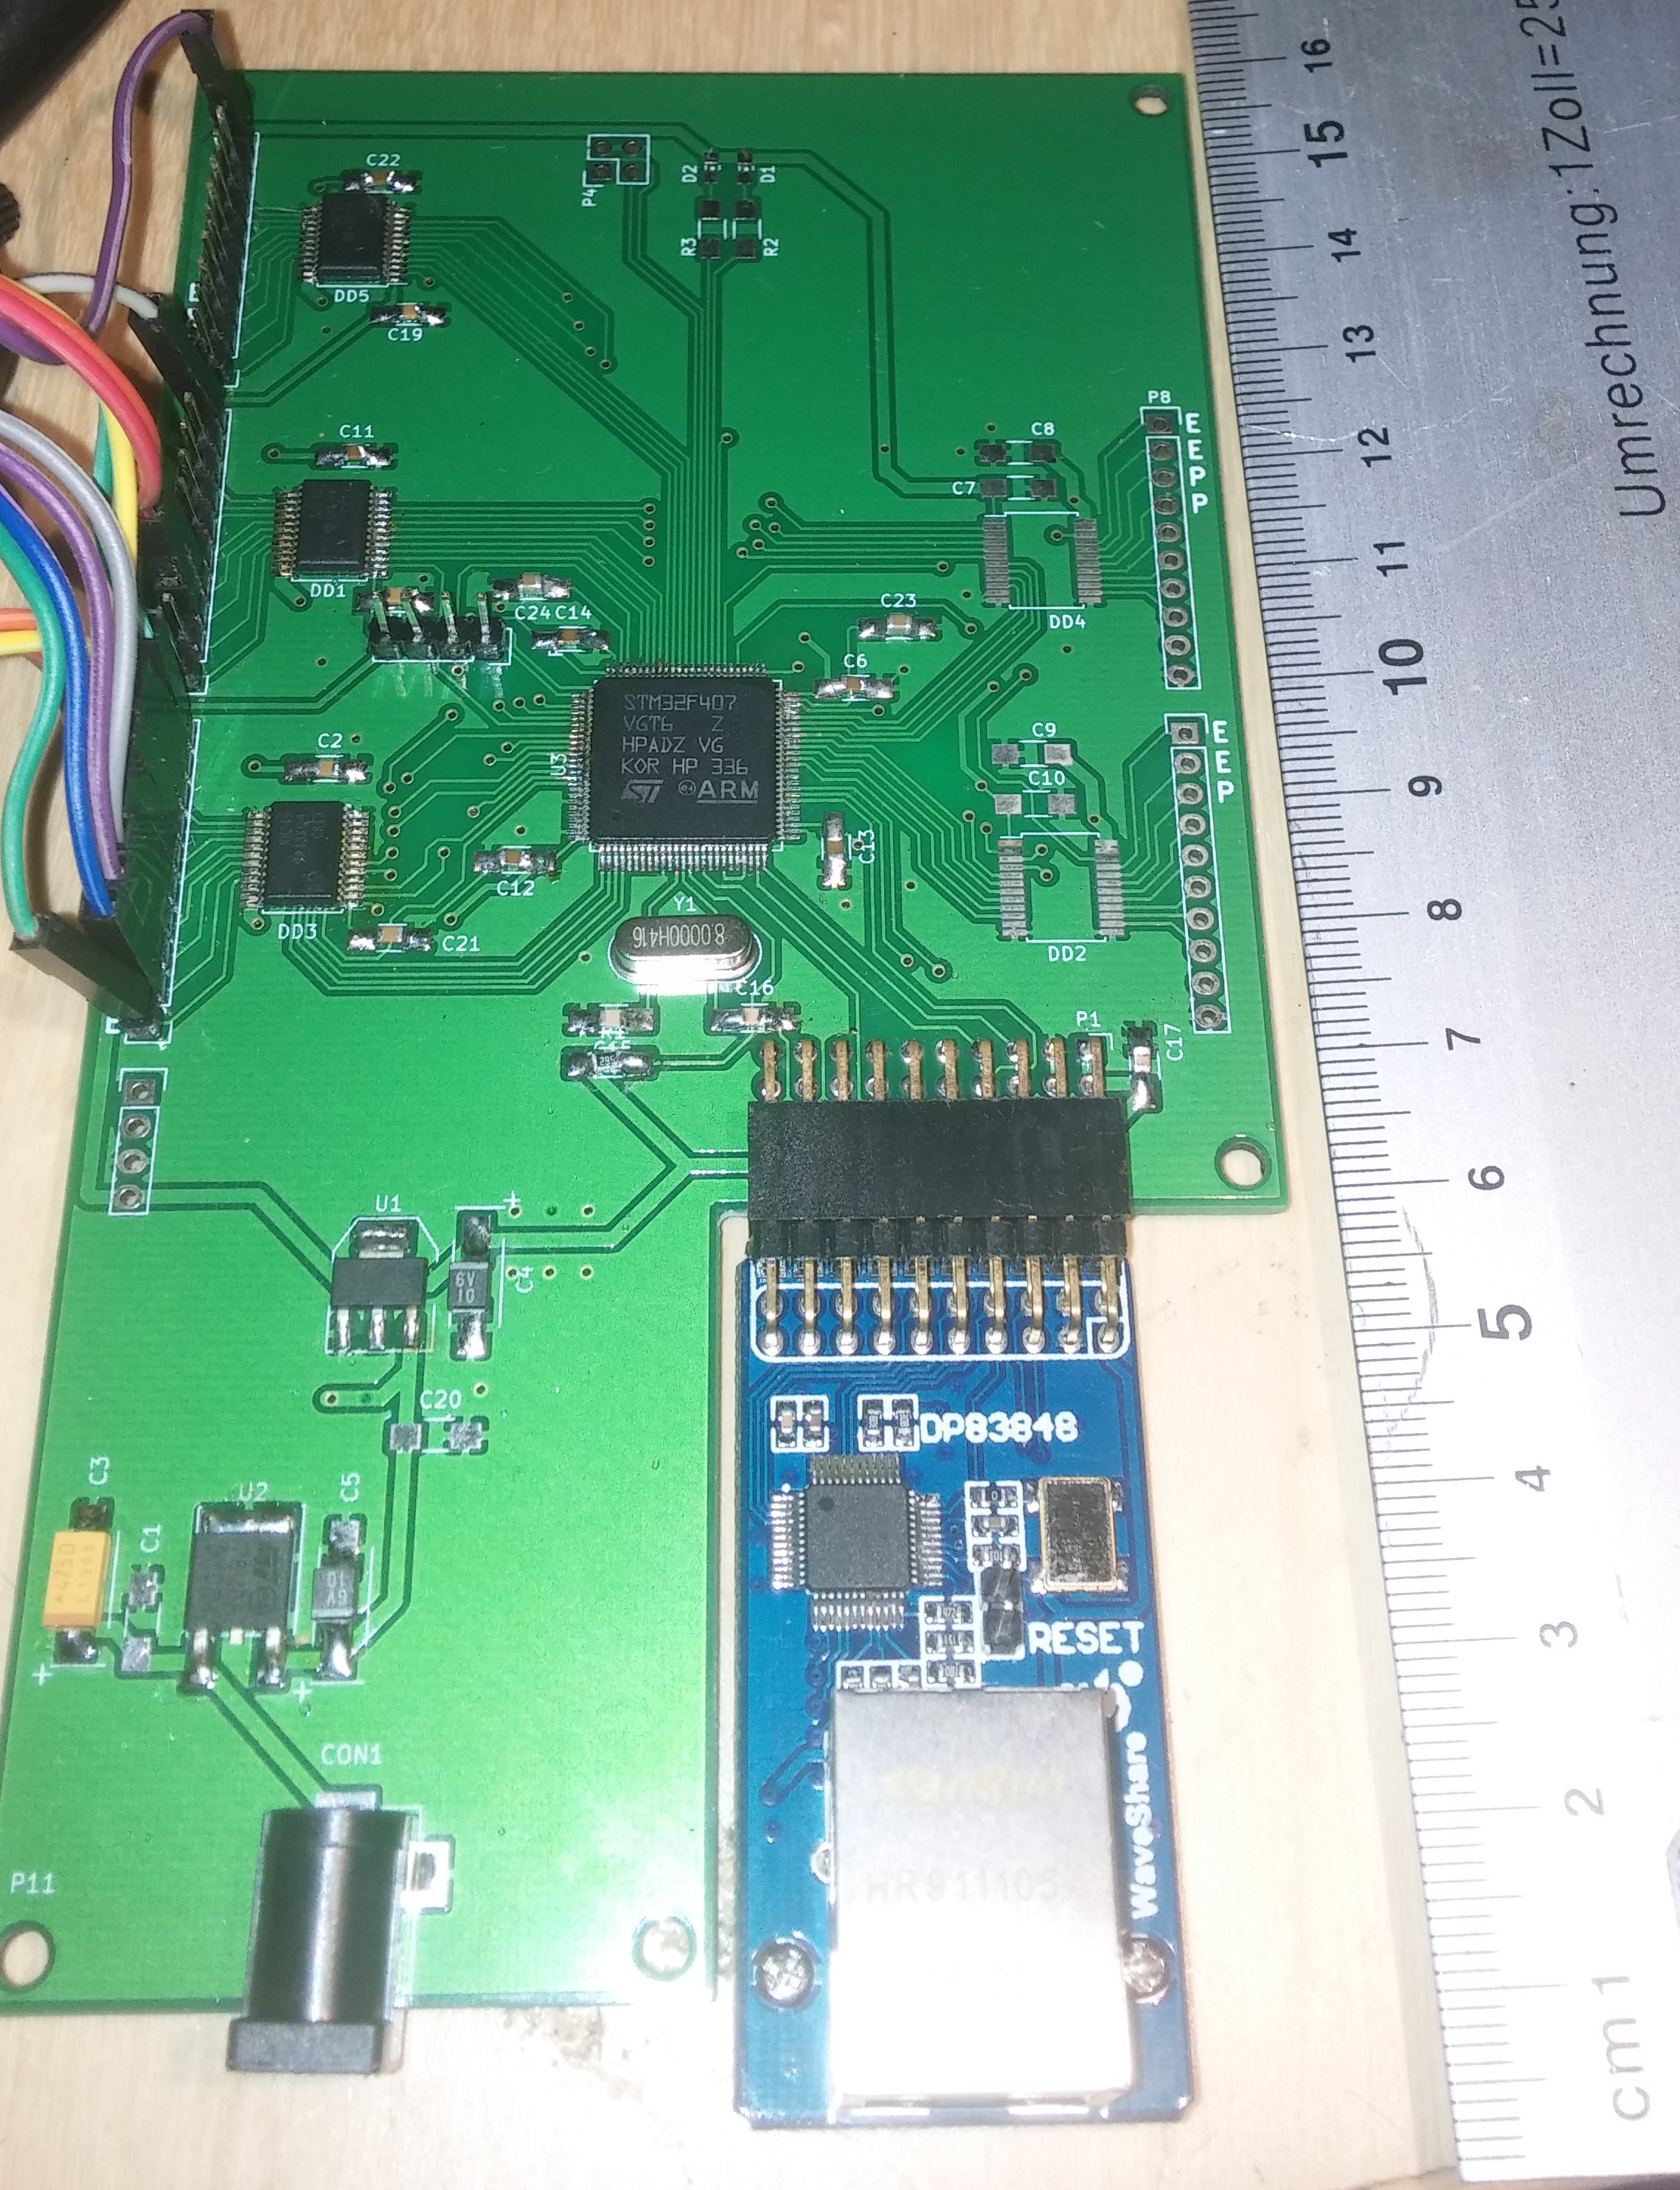 STM32 based Ethernet I/O for LinuxCNC